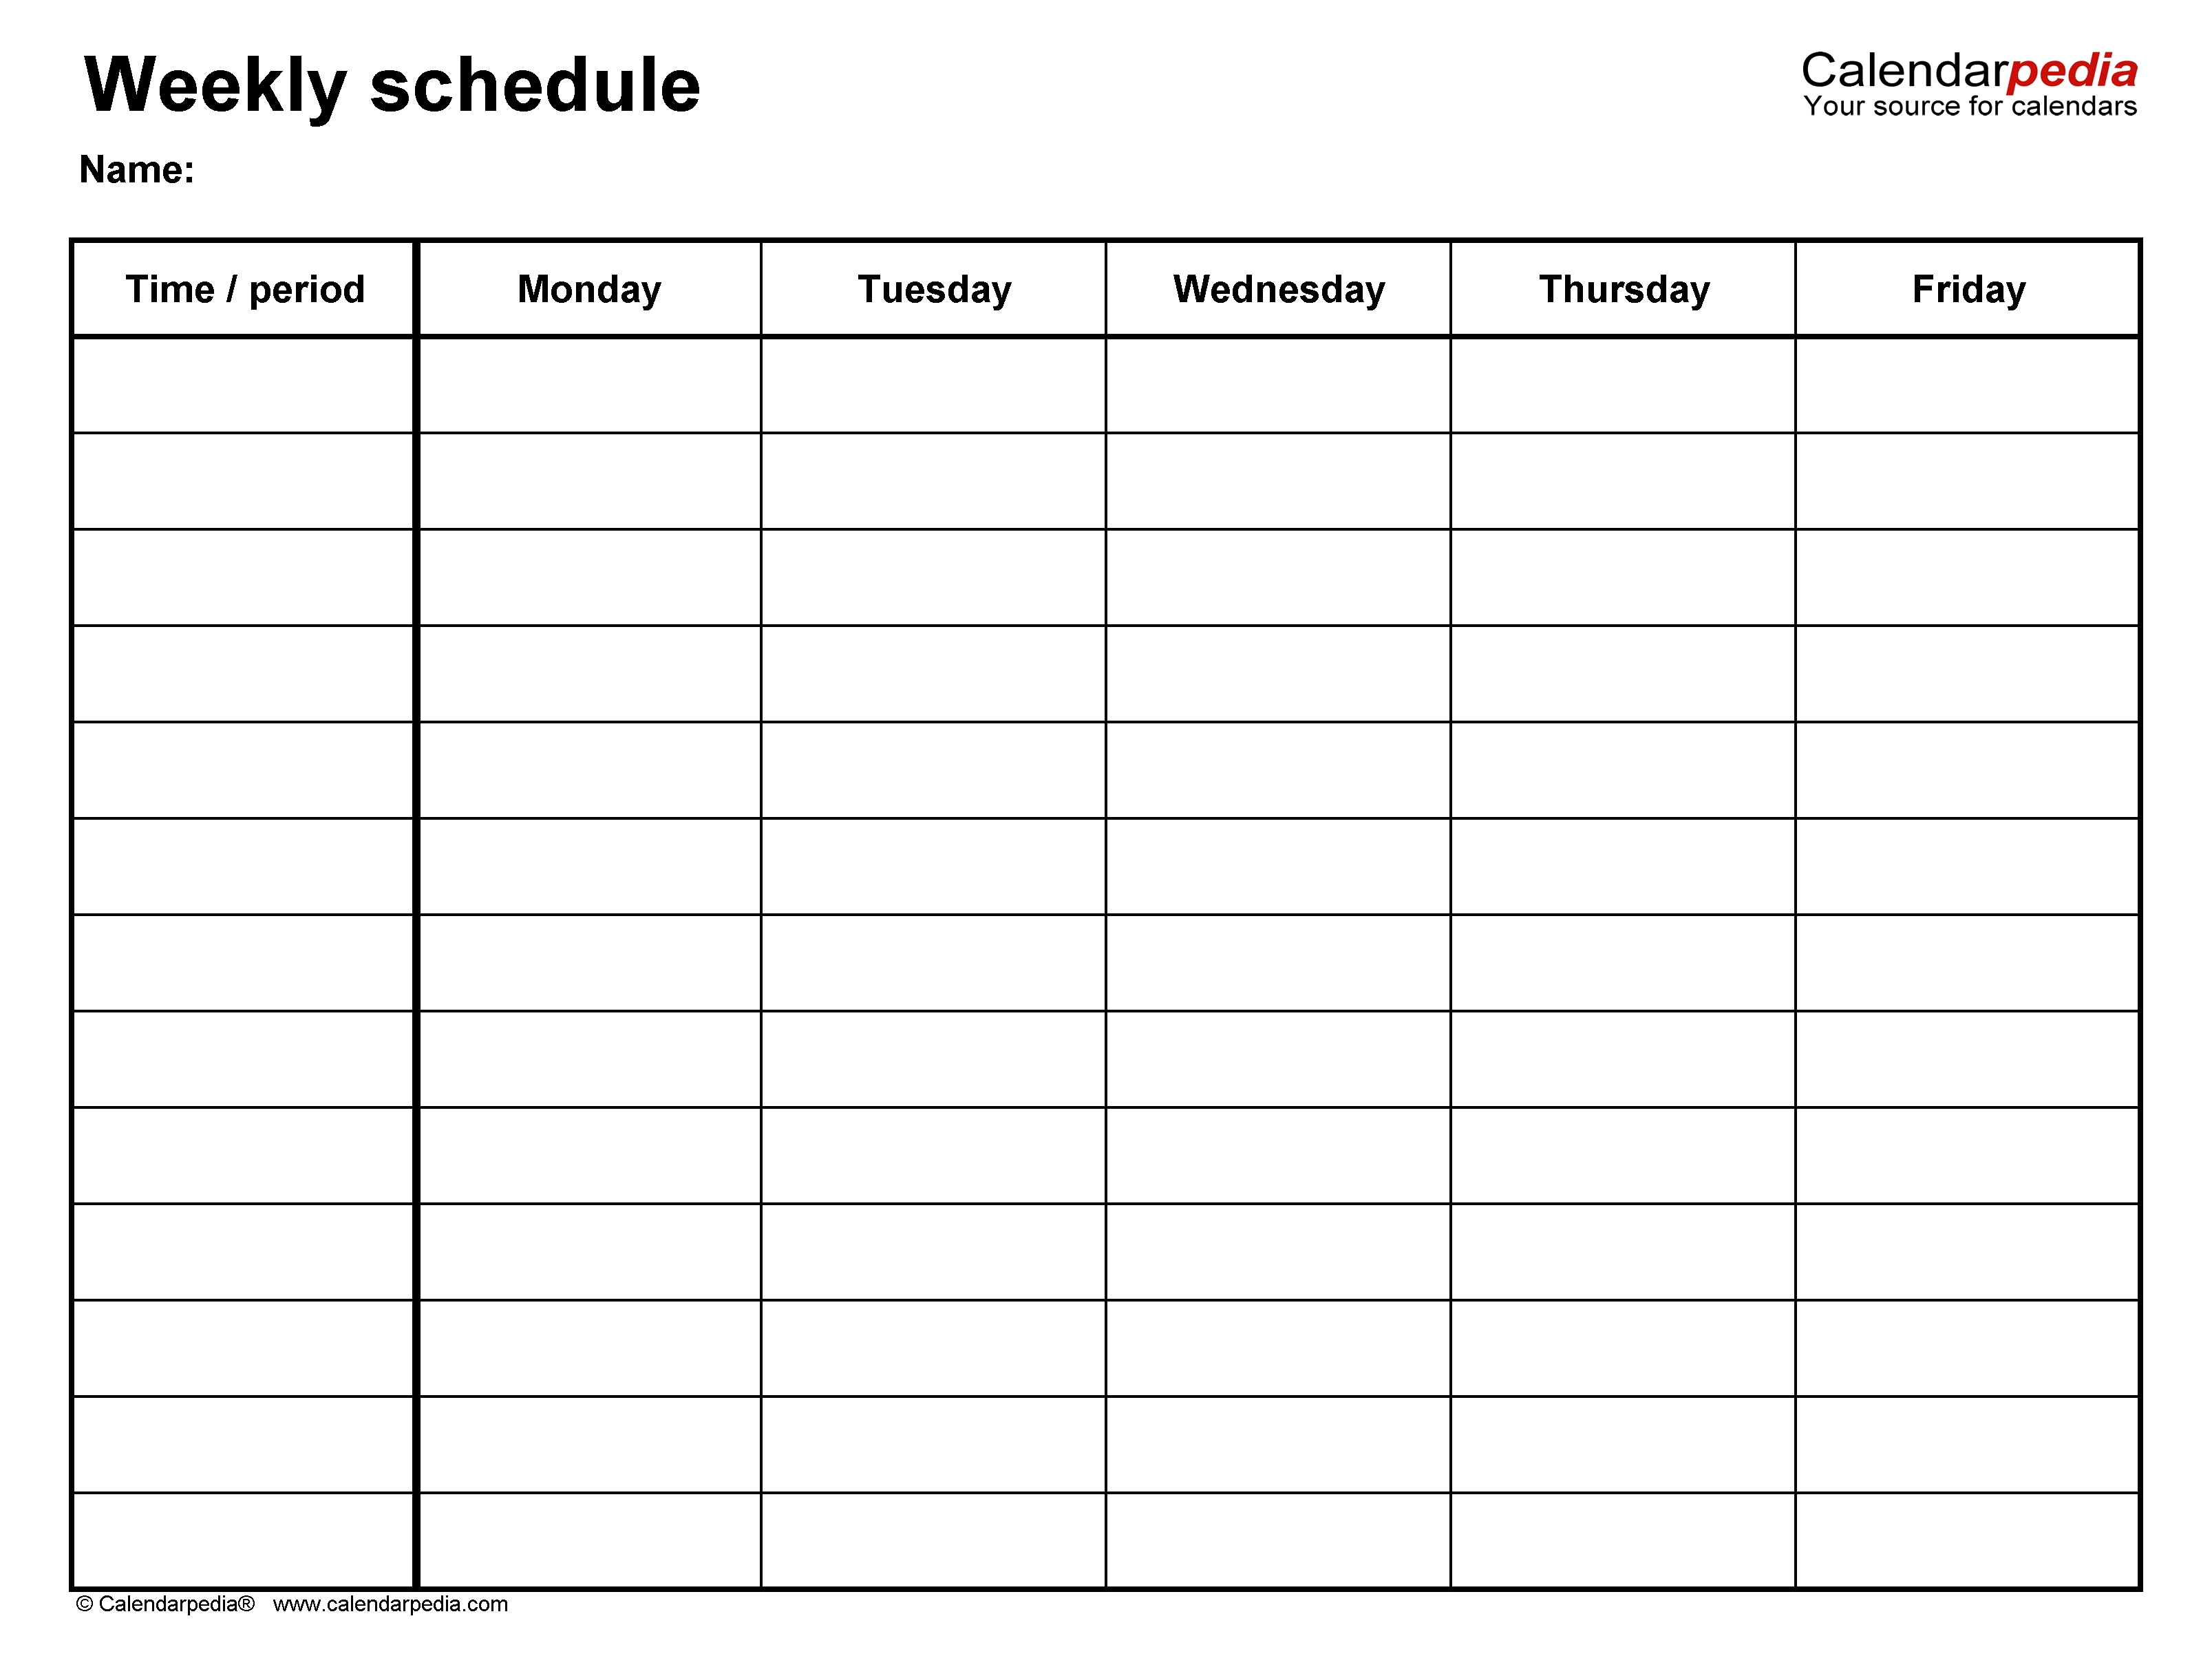 Free Weekly Schedule Templates For Word - 18 Templates-Weekly Hourly Template May Through September 2020